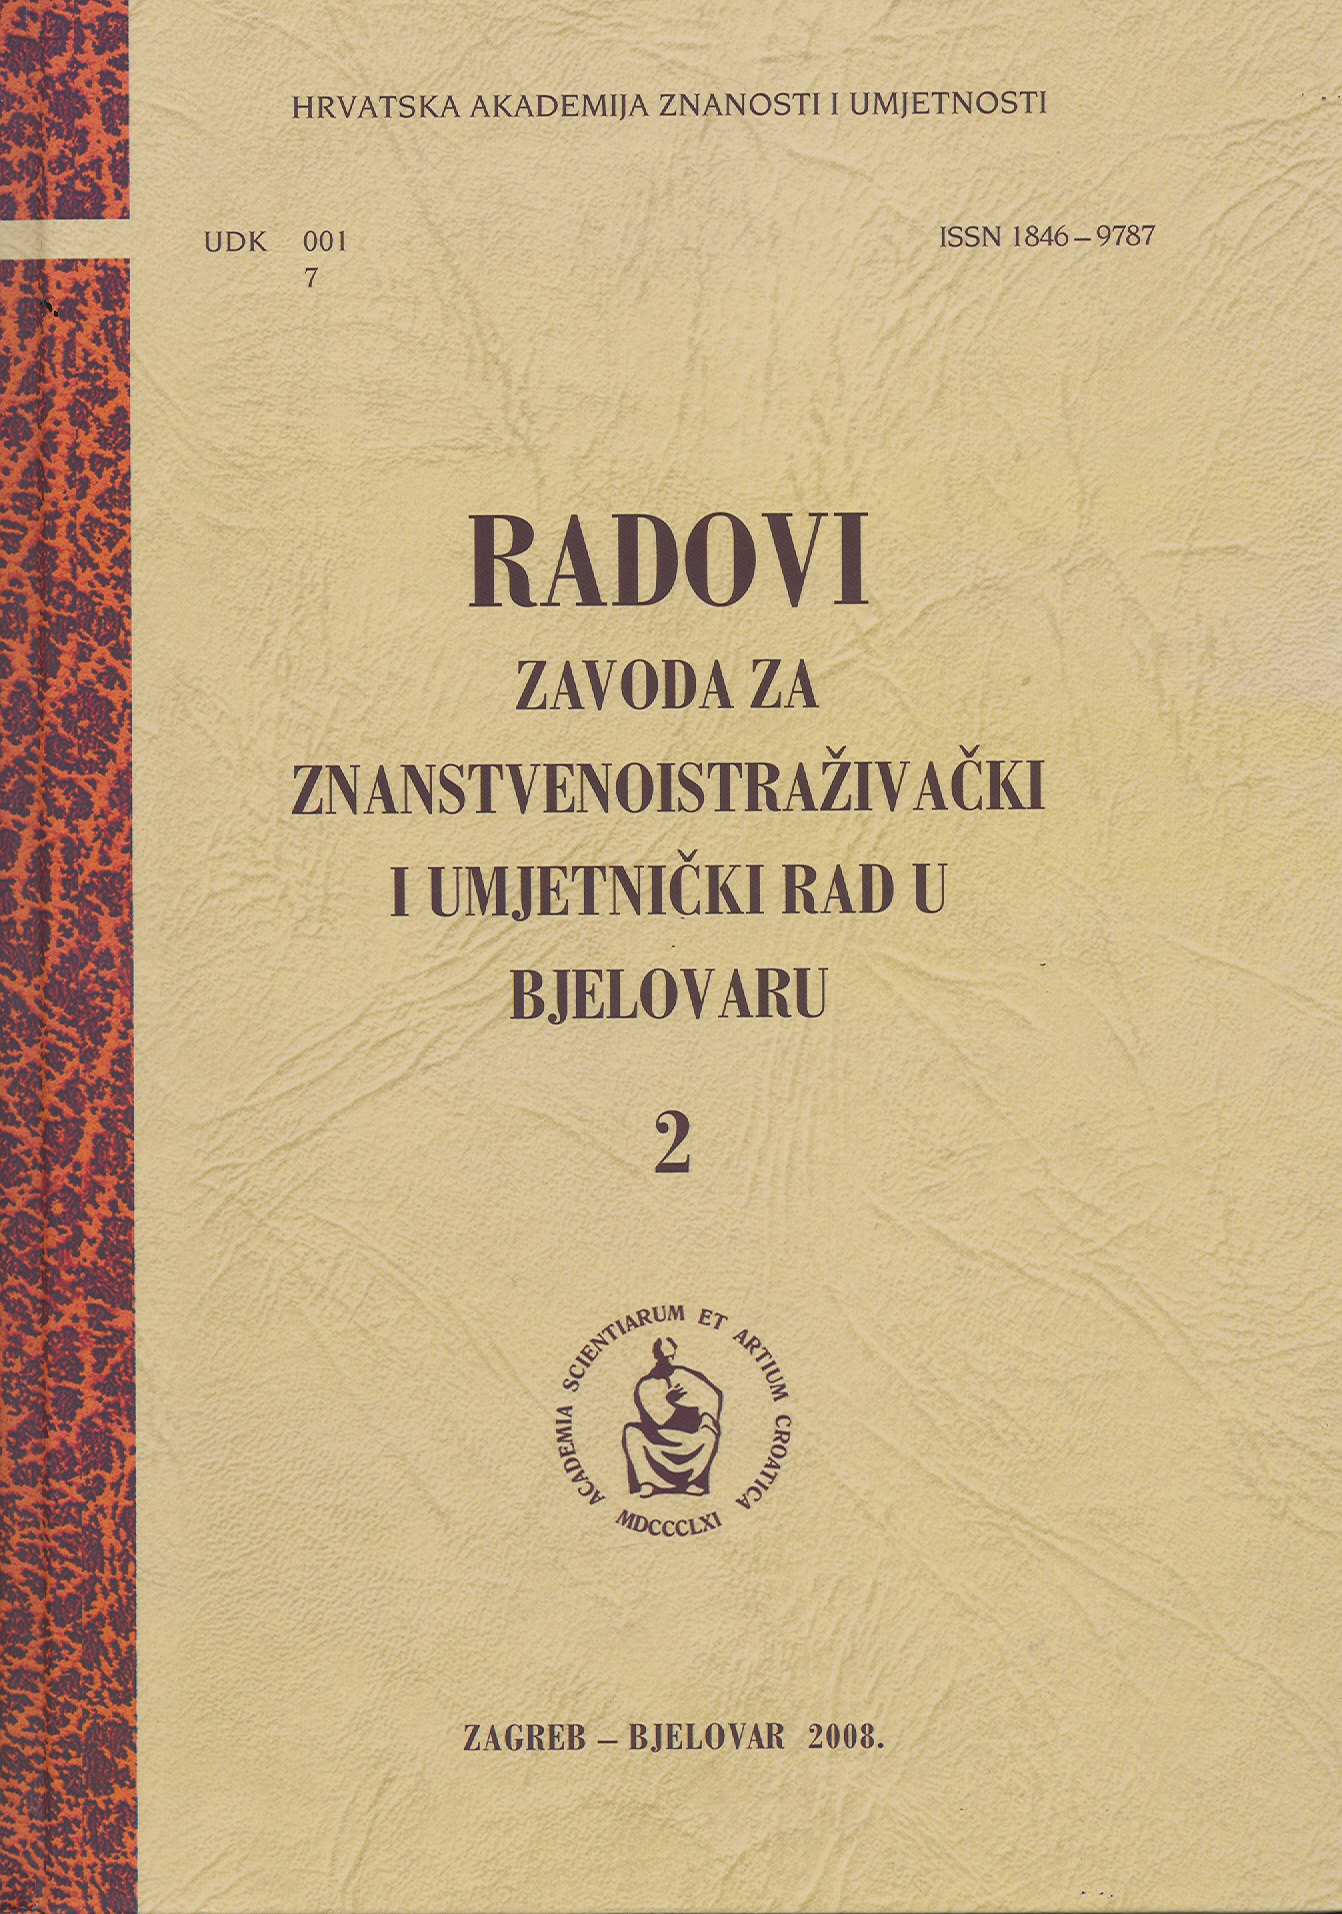 The Beginning of Democracy – Democratic Elections in the Bjelovar Municipality in 1990 Cover Image